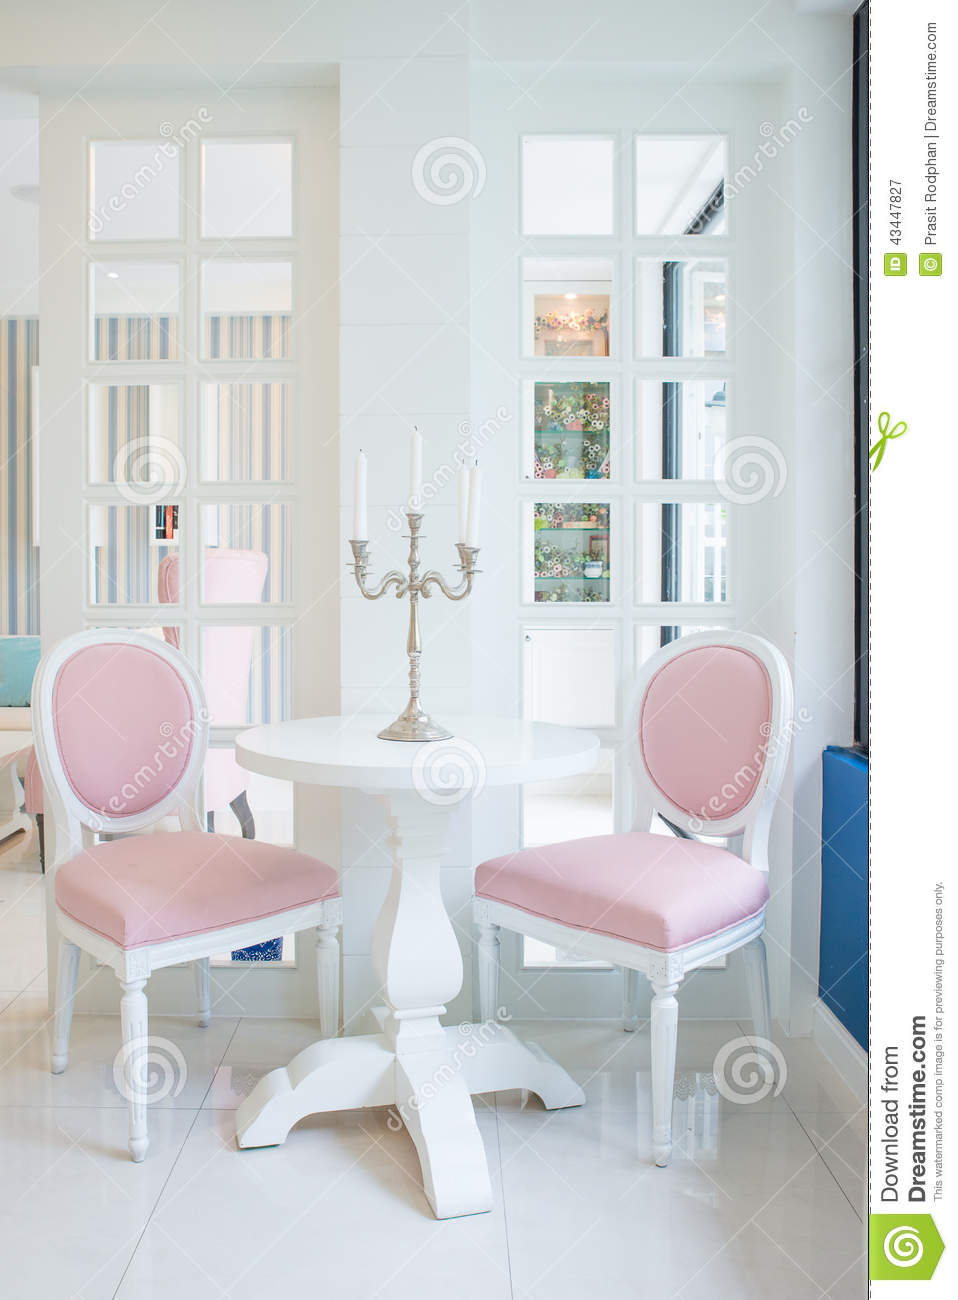 table blanche et chaise rose avec la bougie sur la table dans le salon photo stock image 43447827. Black Bedroom Furniture Sets. Home Design Ideas